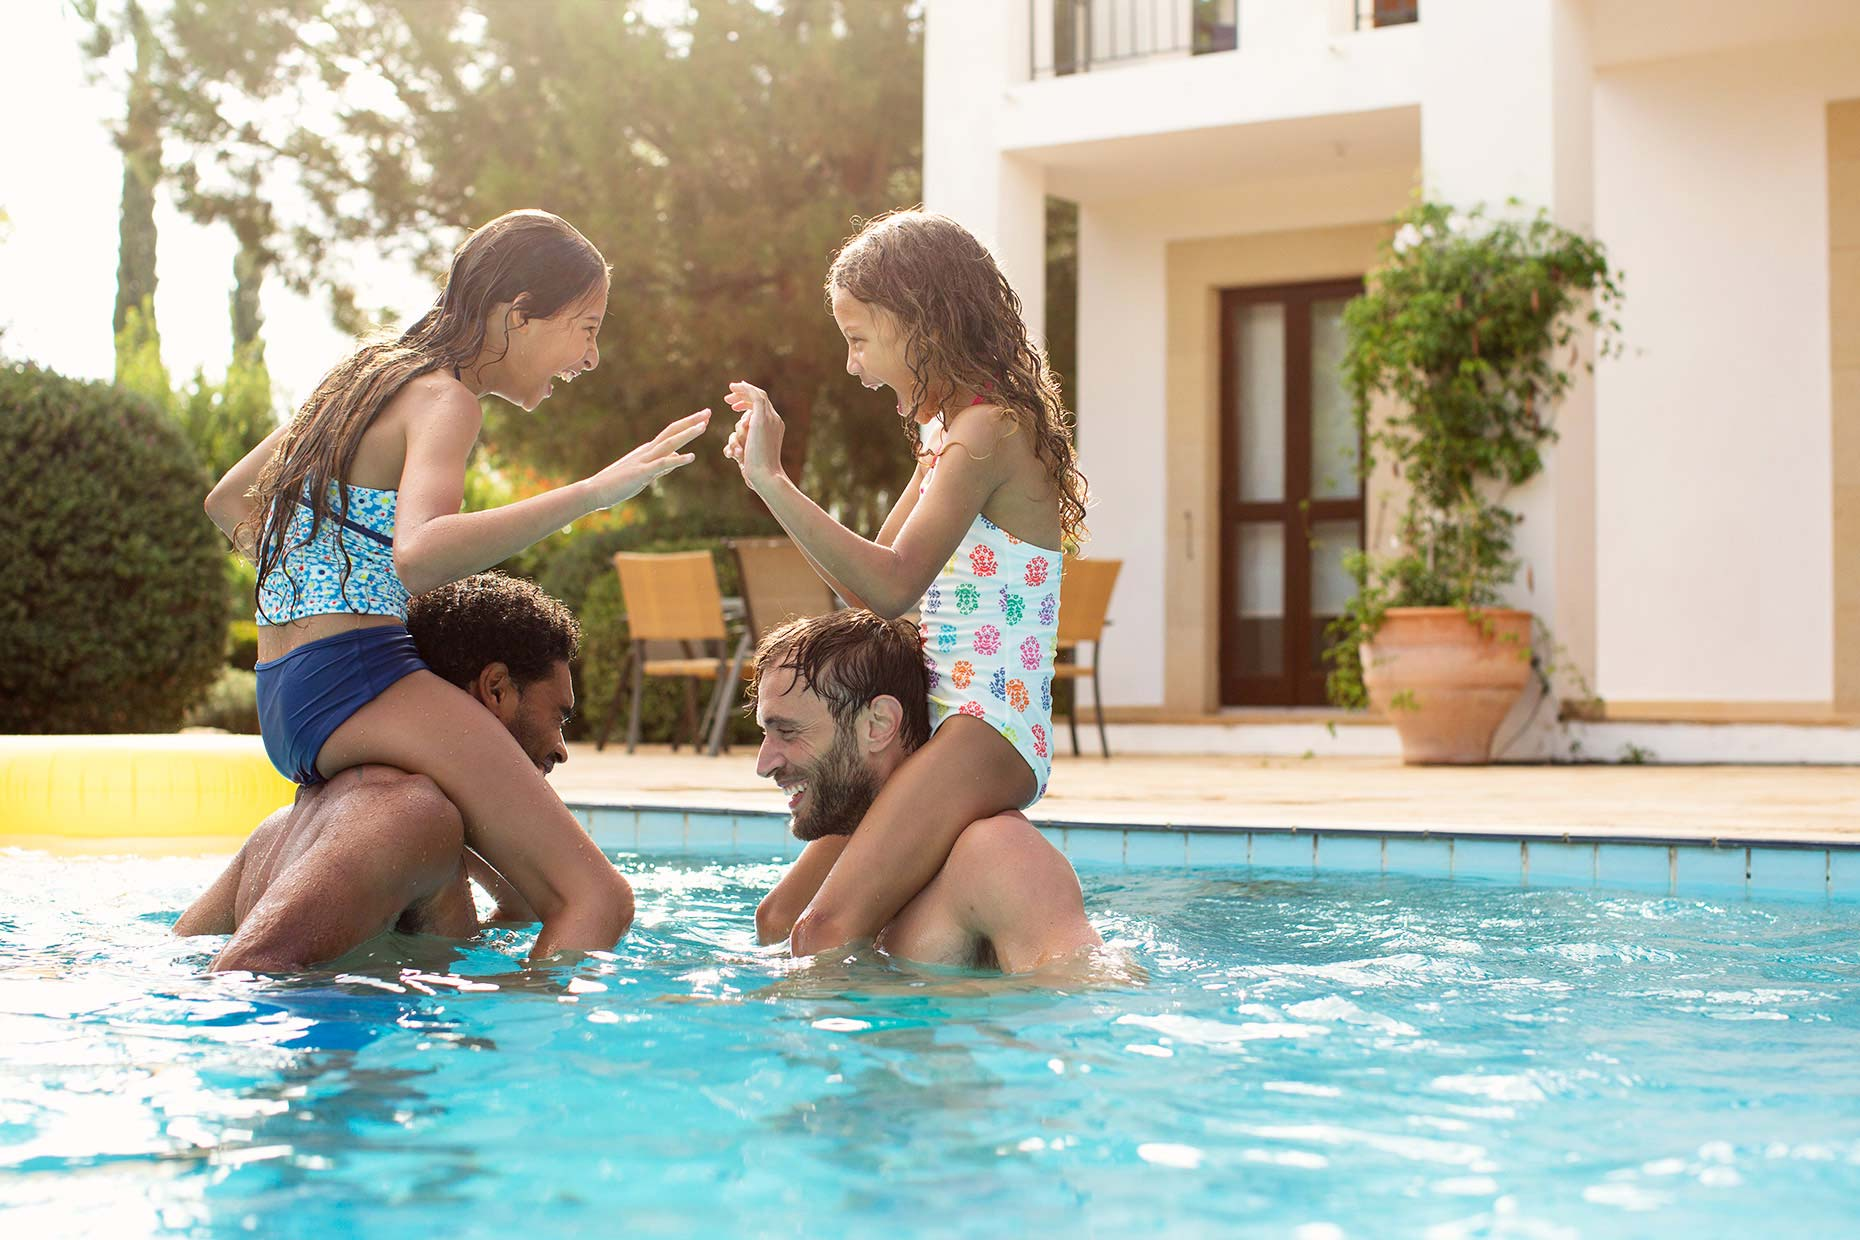 sisters-with-dads-in-pool